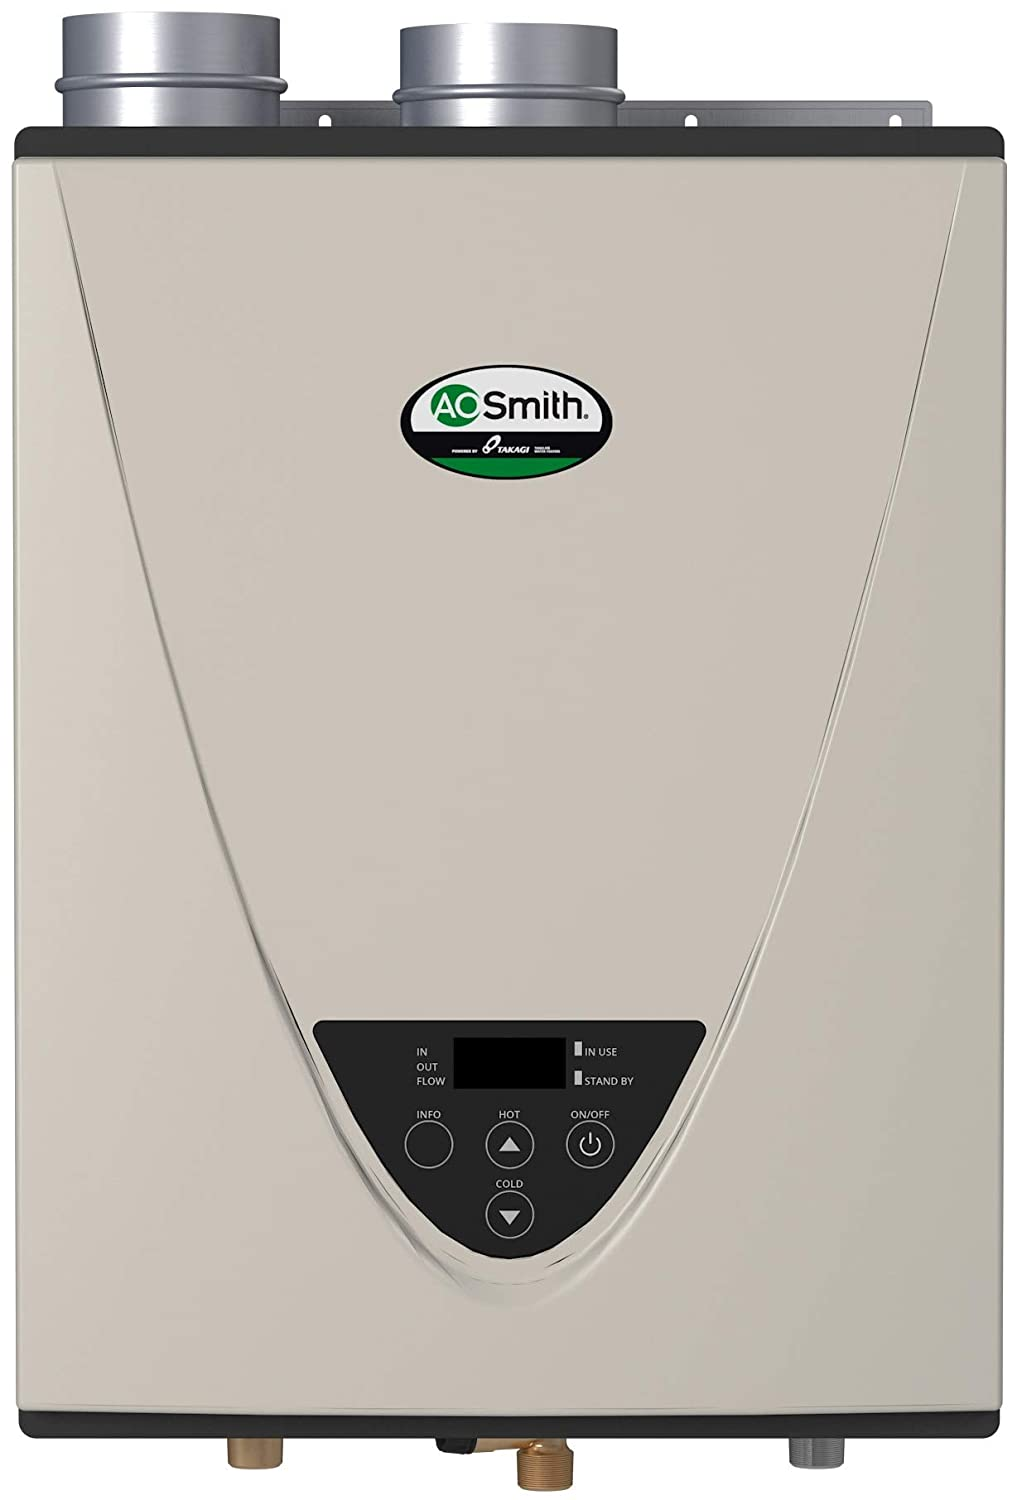 AO Smith ATI-340H-N 8 GPM Residential/Commercial Condensing Natural Gas Indoor Tankless Water Heater with 180000 Maximum BTU Input